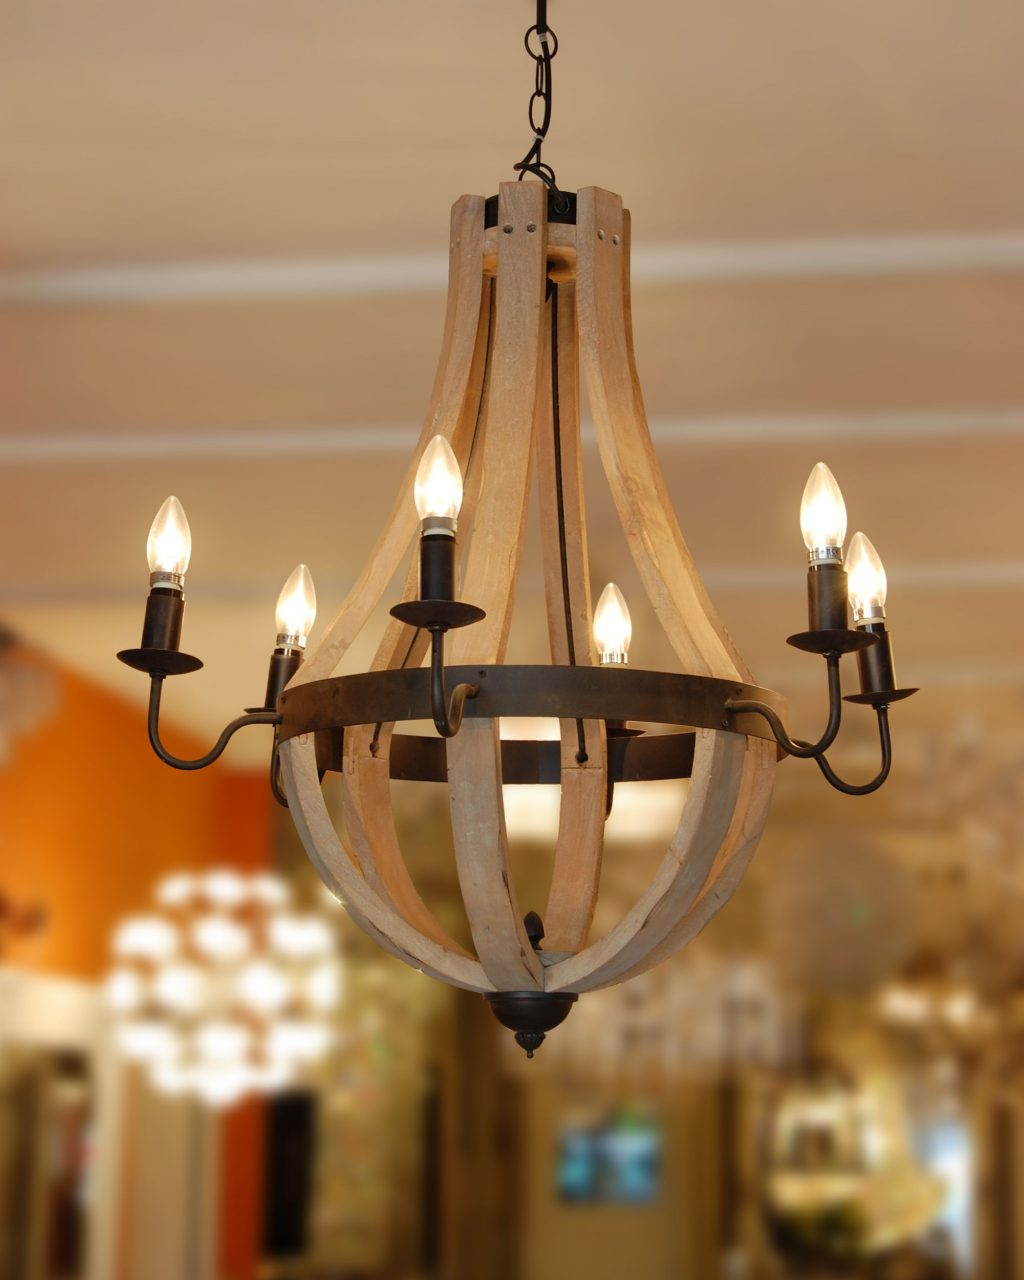 The Manning Chandelier Is A Simple Lovely Turned Wood Chandelier A